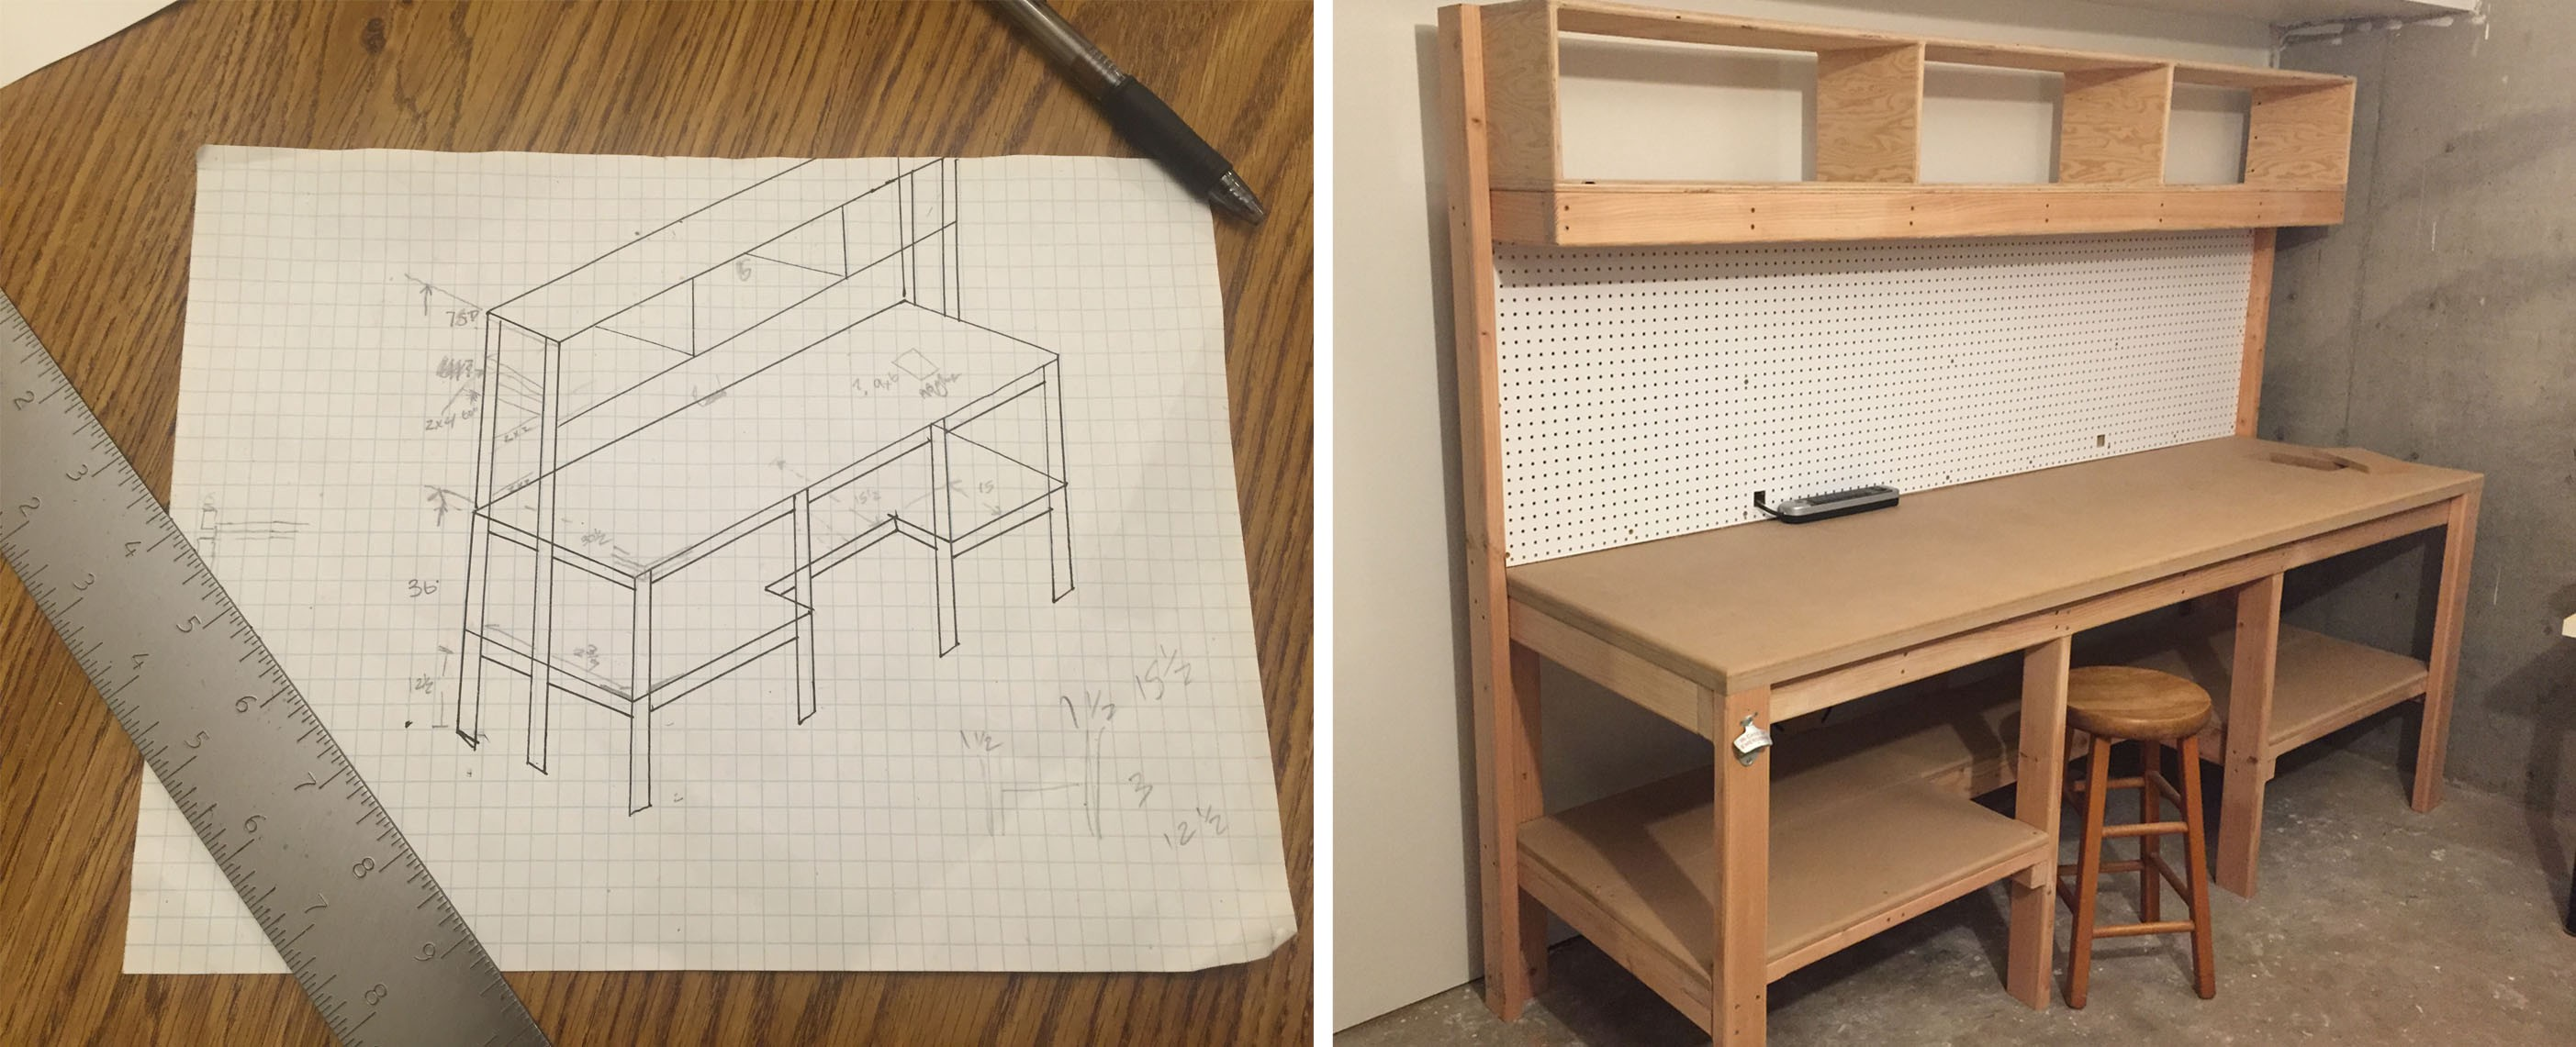 Astonishing My First Side Project Of 2016 Building A Workbench Pdpeps Interior Chair Design Pdpepsorg